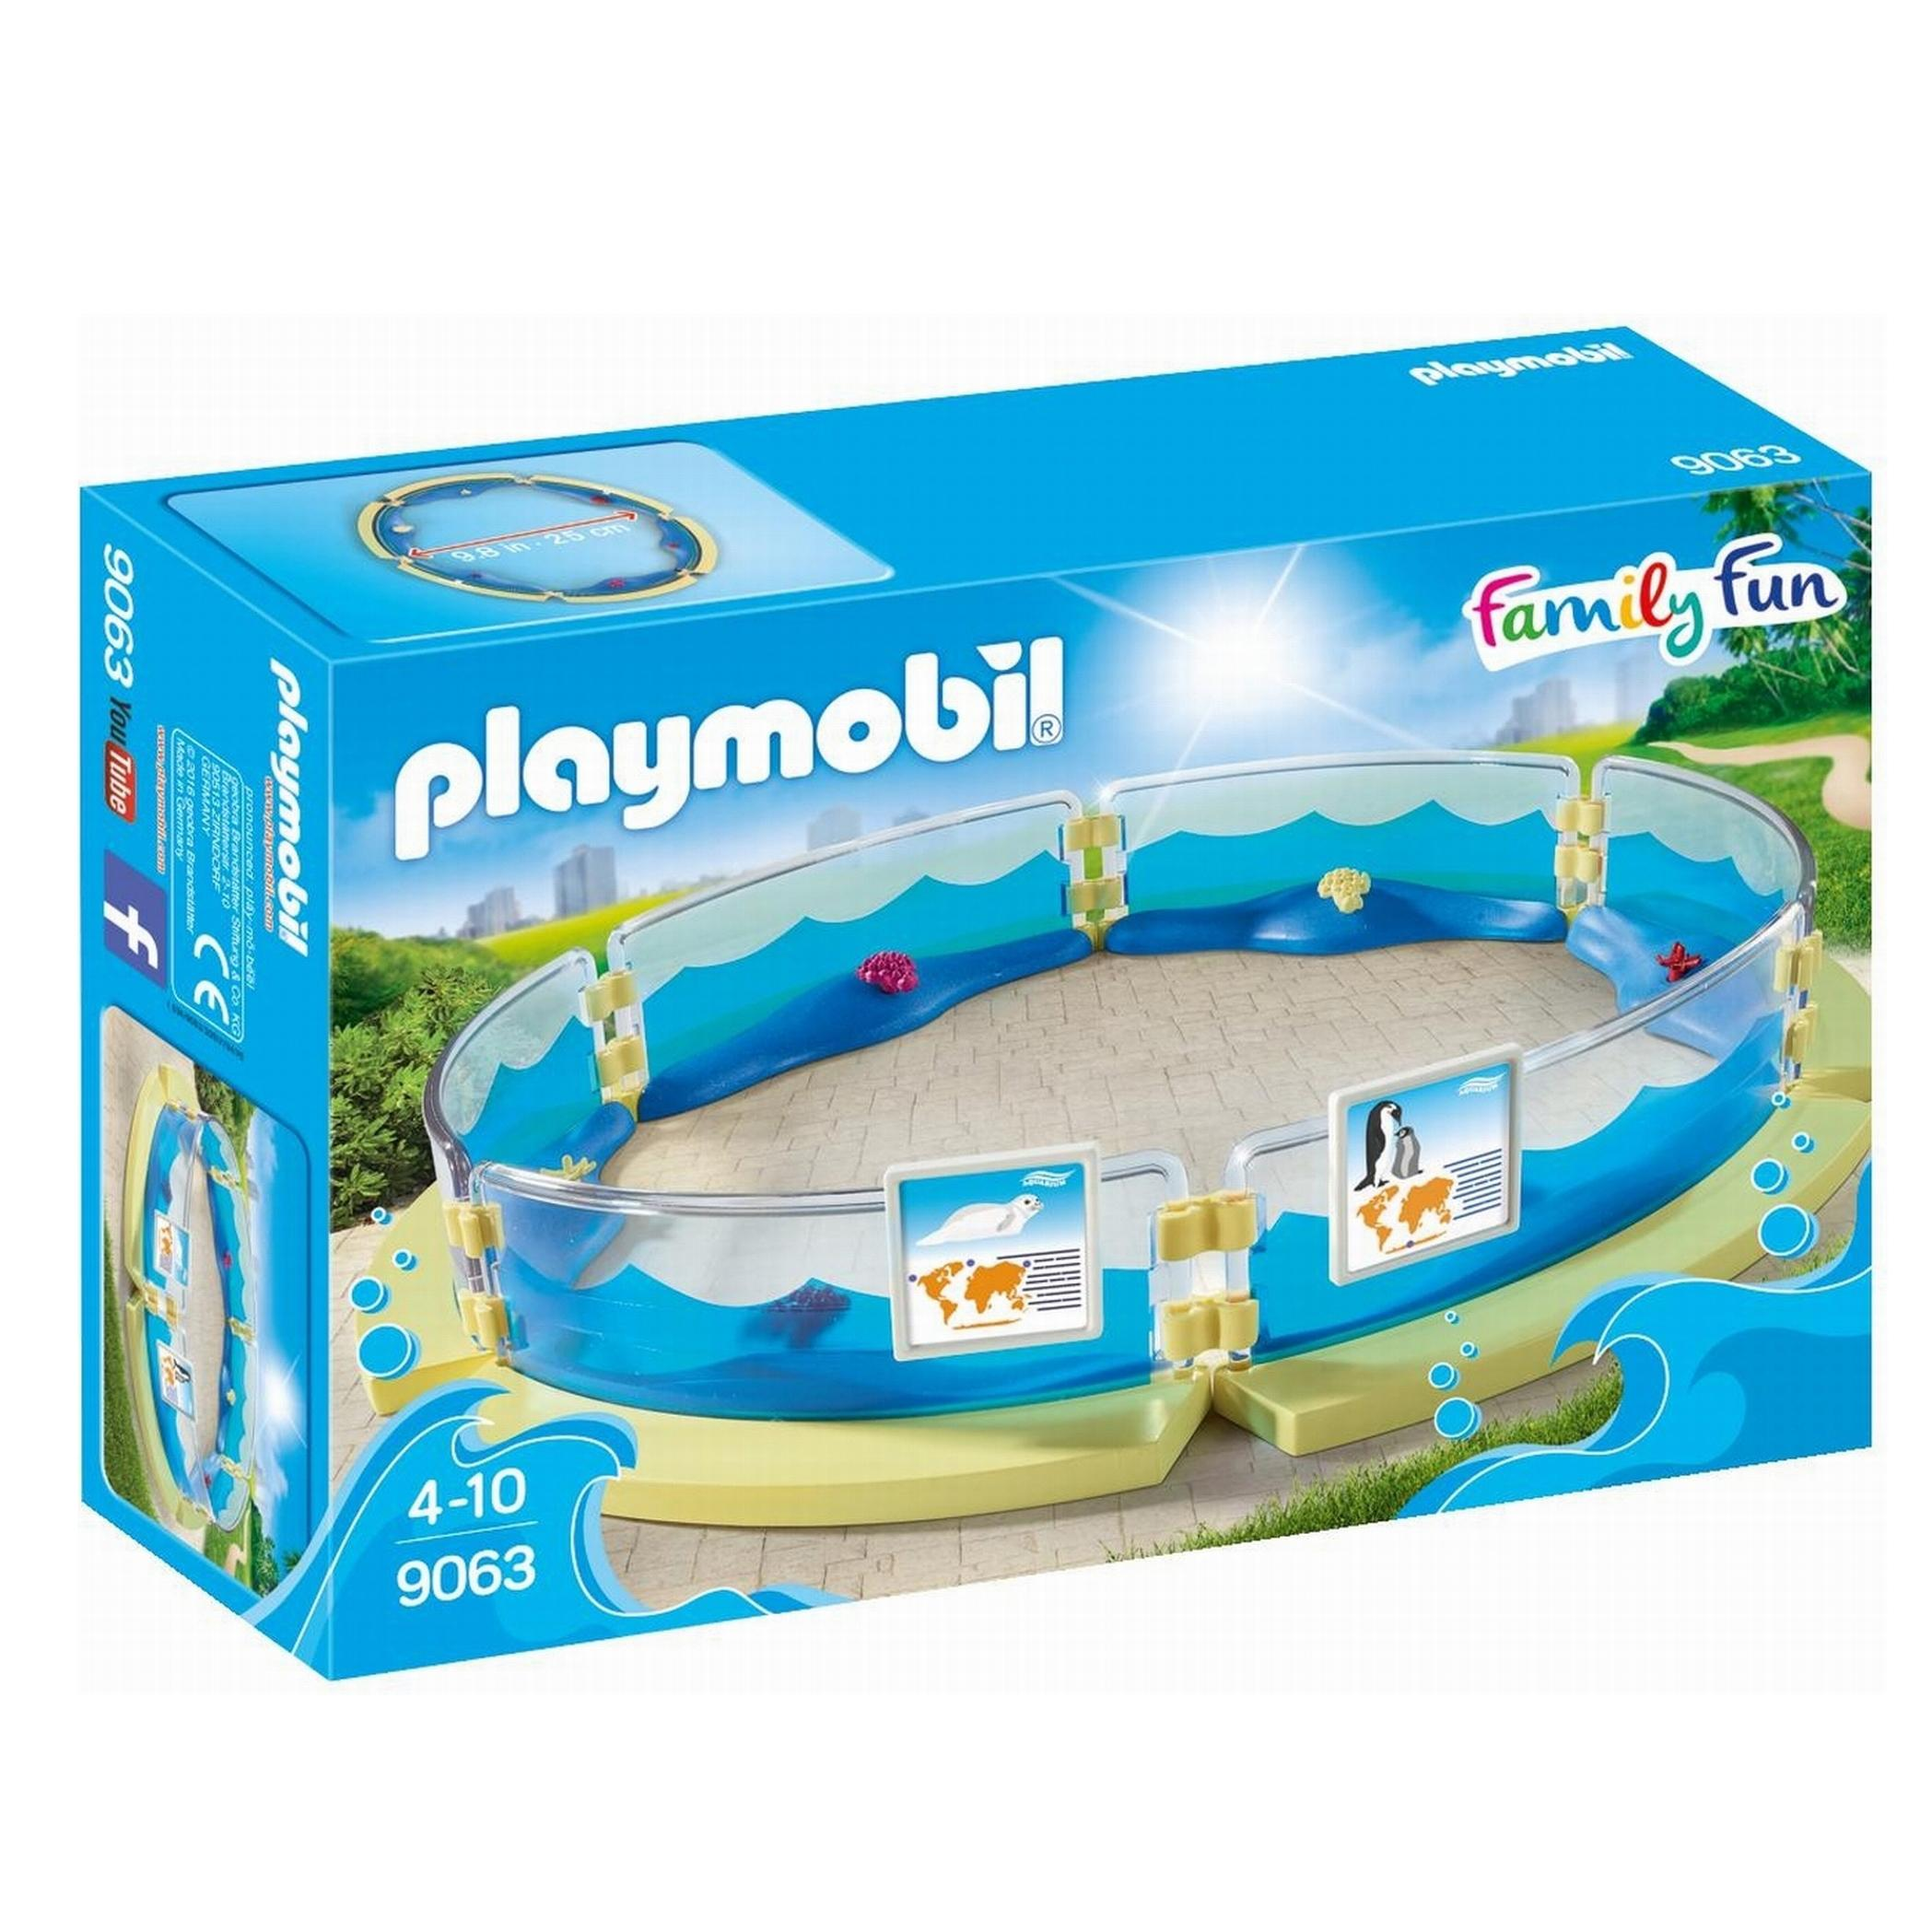 Playmobil fun aquarium